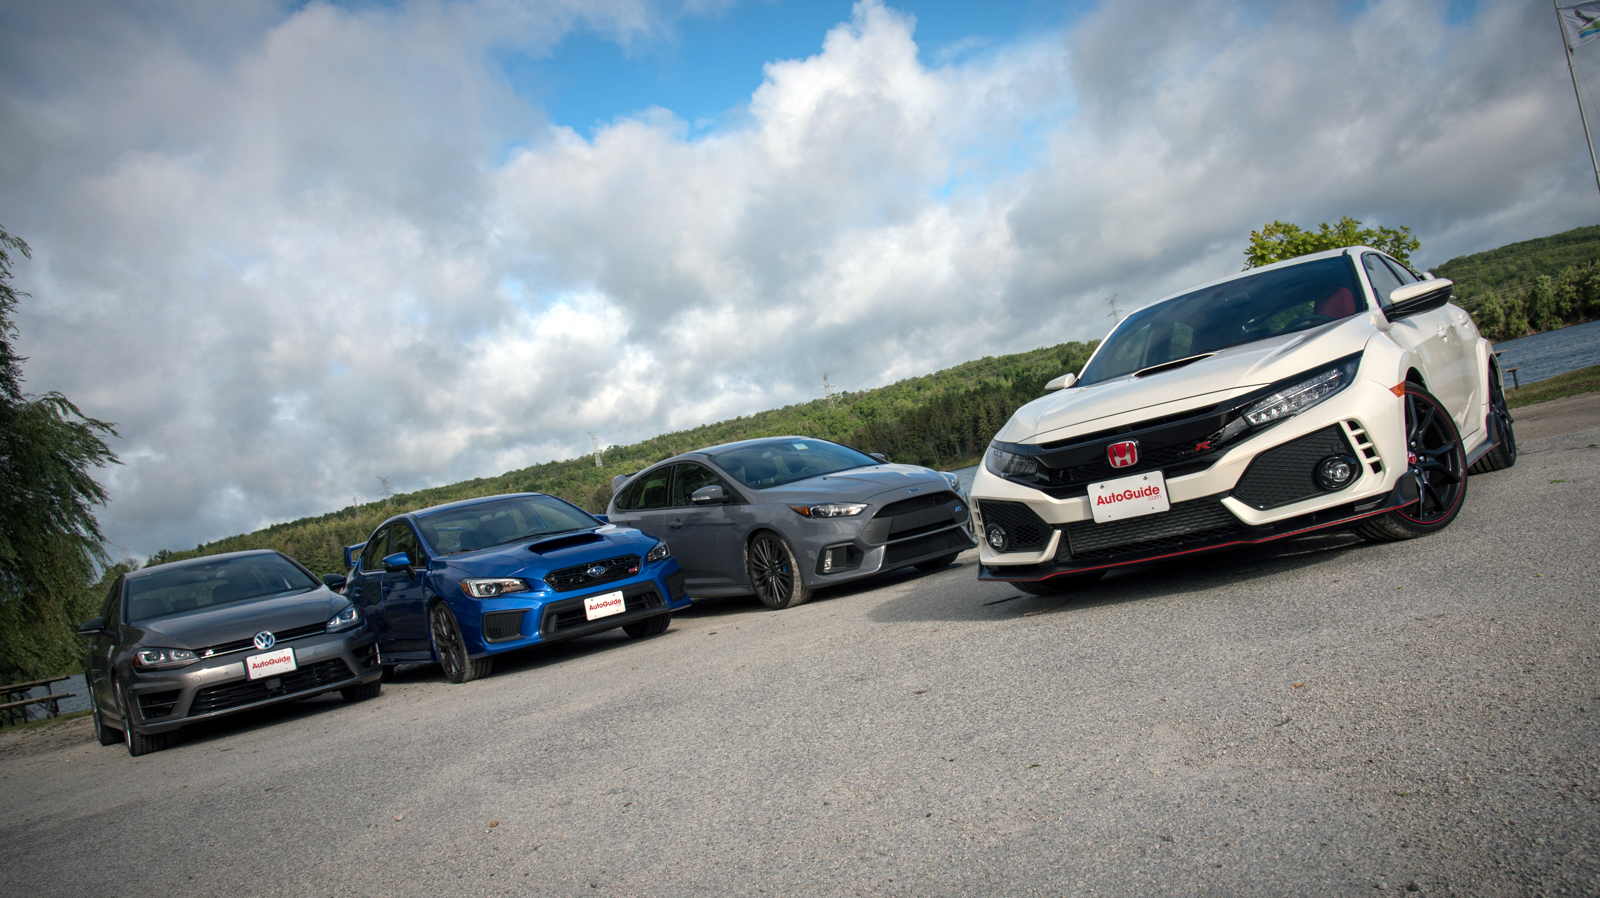 Honda Civic Type R Vs Subaru WRX STI Vs VW Golf R Vs Ford Focus RS: Sport  Compact Comparison